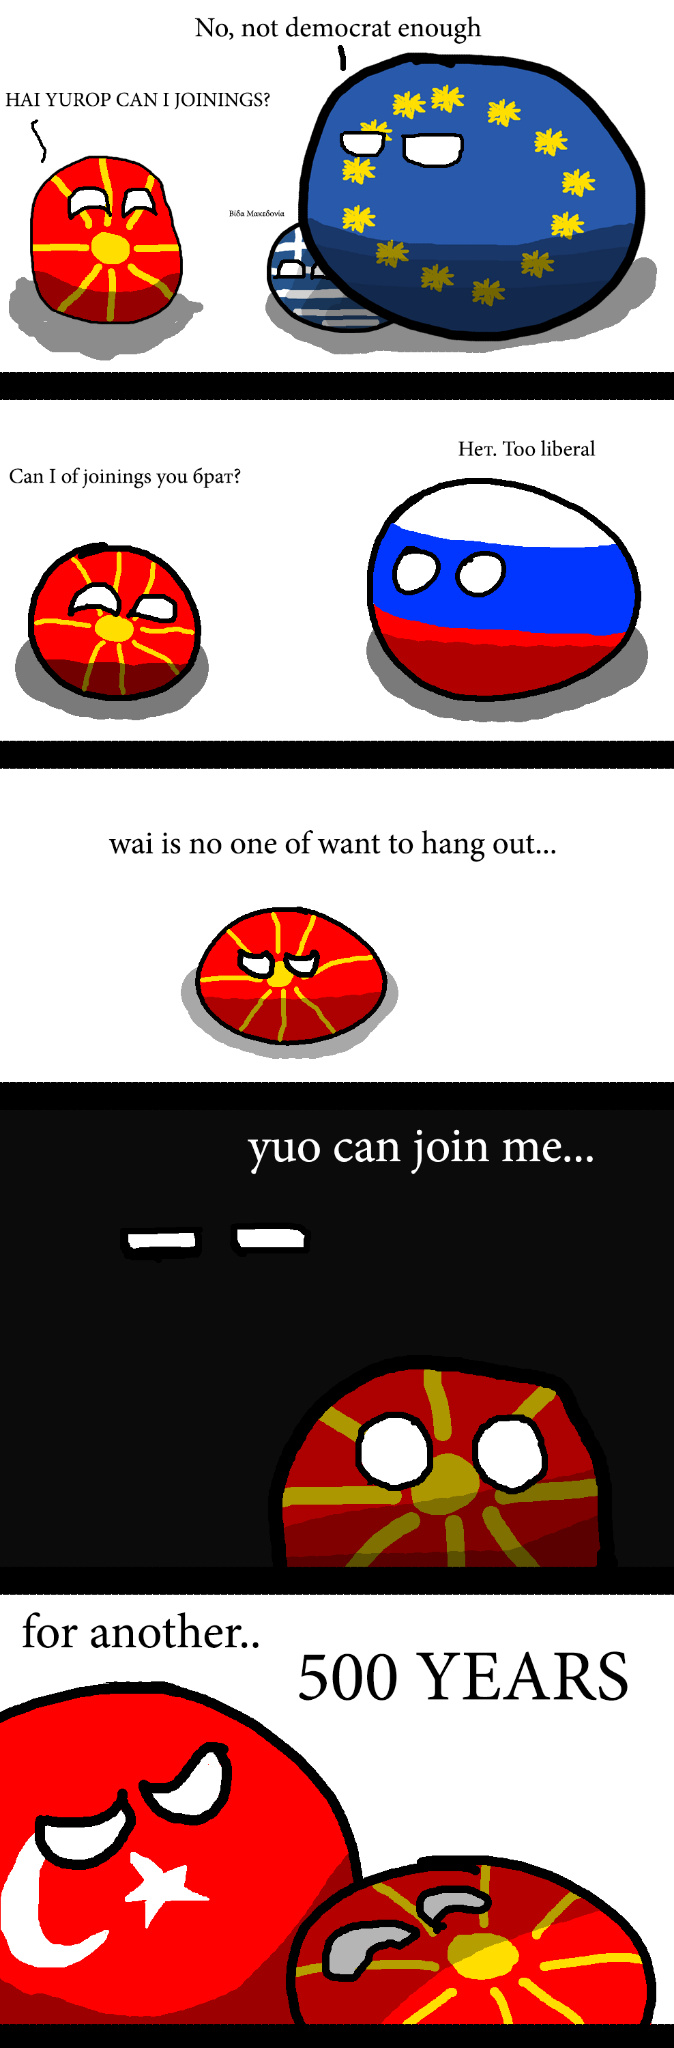 Macedoniaball - meme